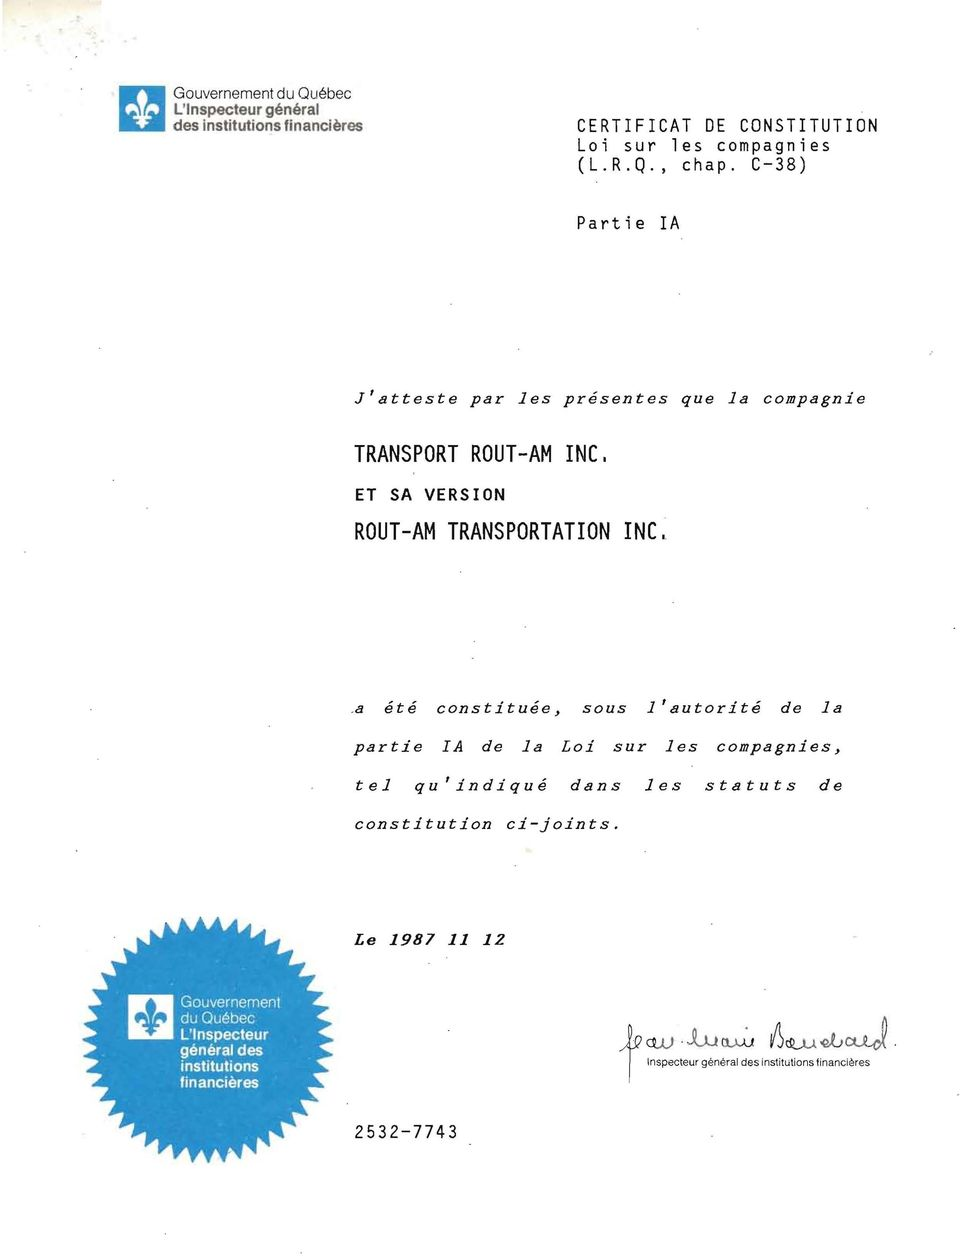 C-38) Partie la J'atteste par les présentes que la compagnie TRANSPORT ROUT-AM INC, ET SA VERSION ROUT-AM